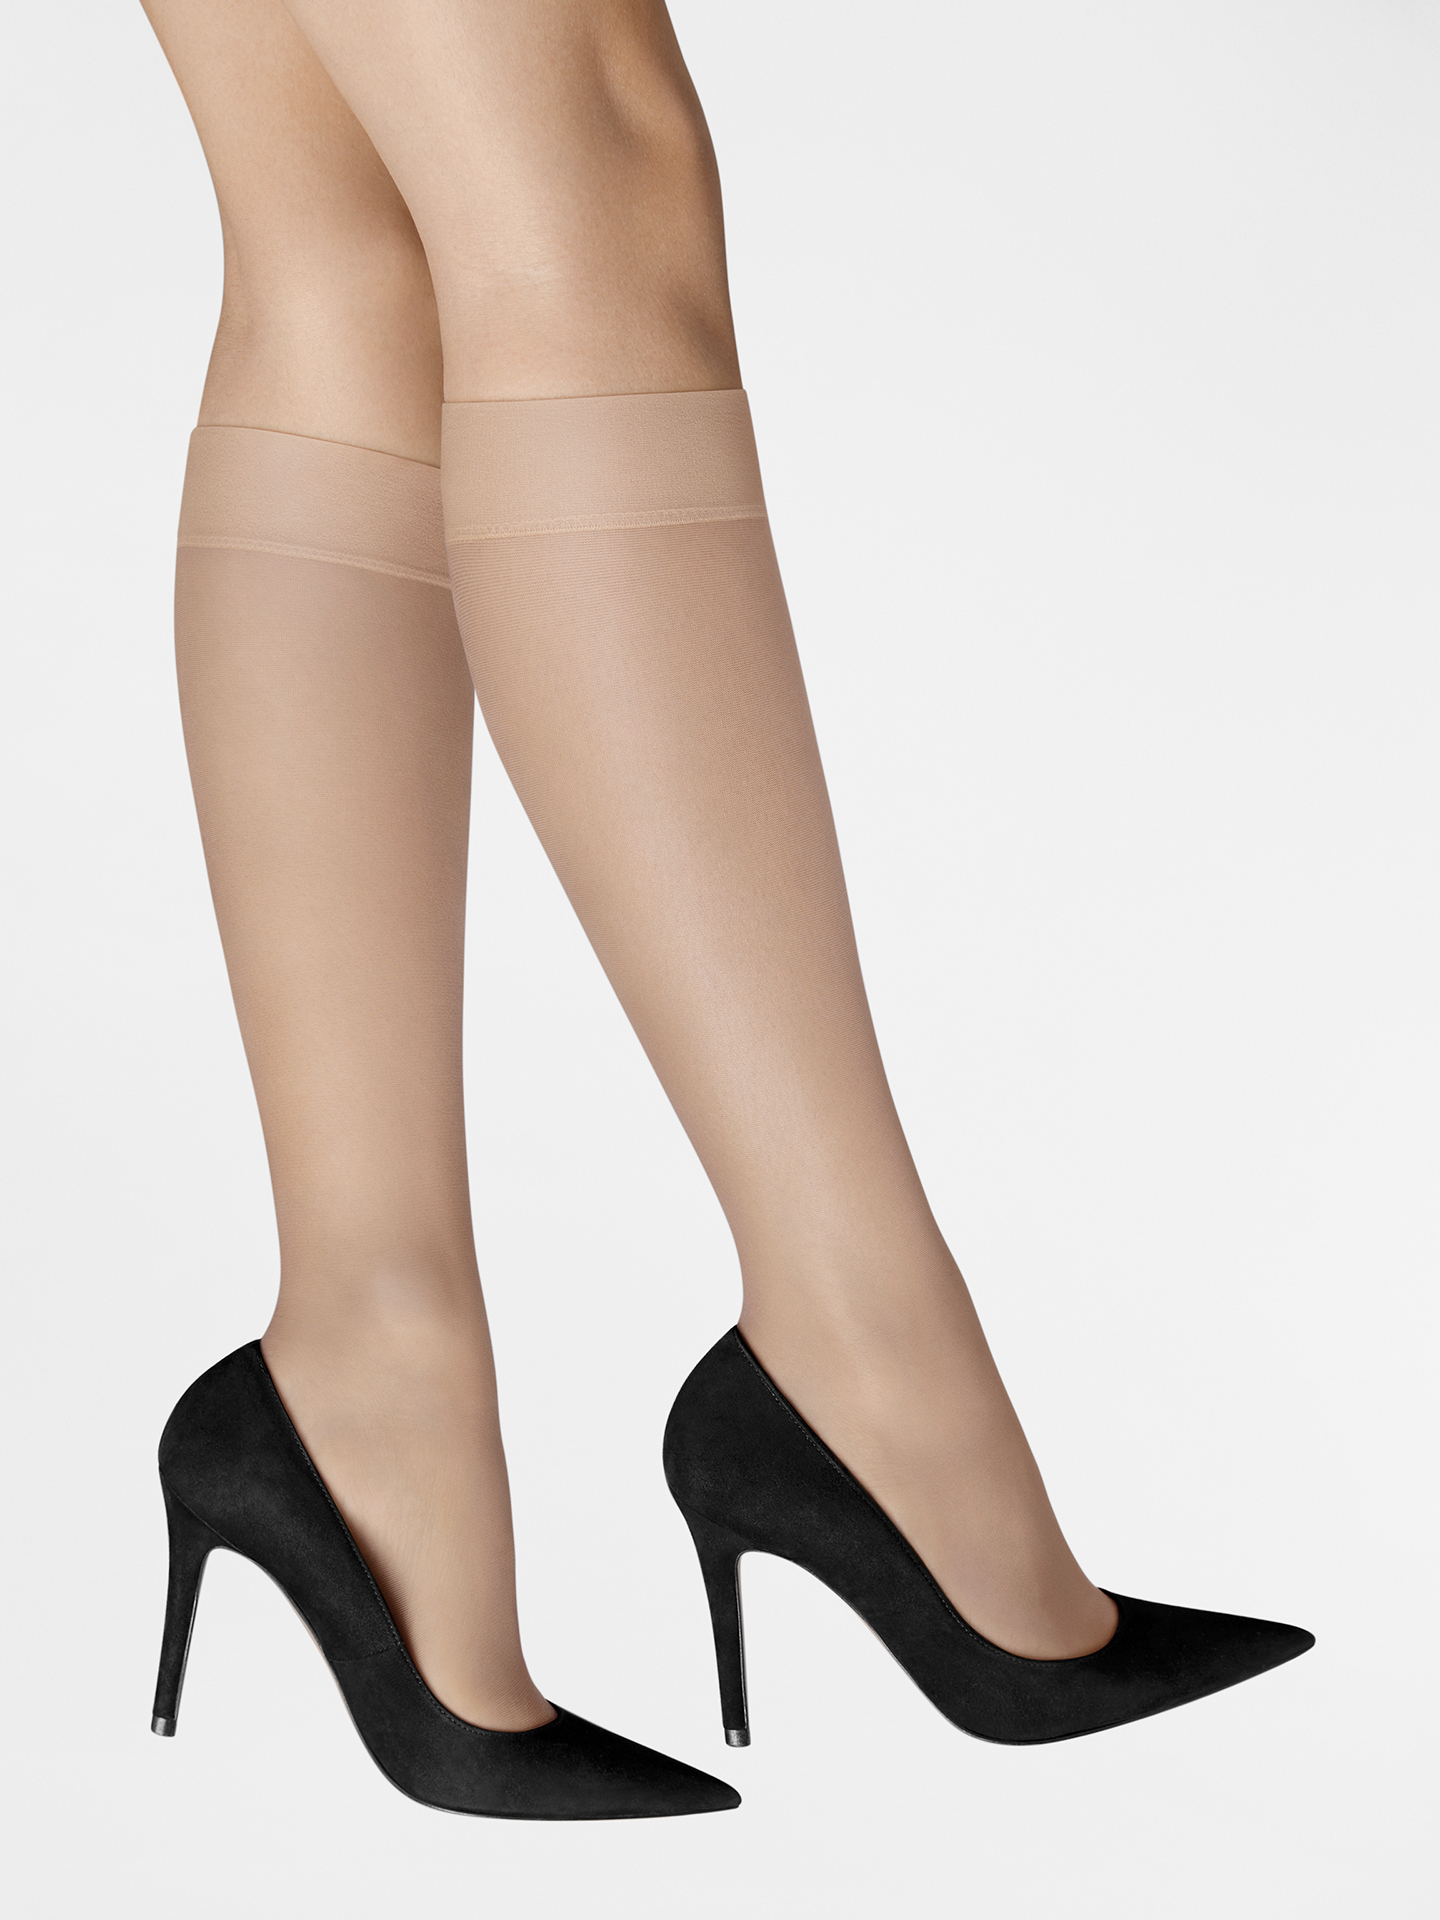 Wolford Apparel & Accessories > Clothing > 15 Knee-Highs